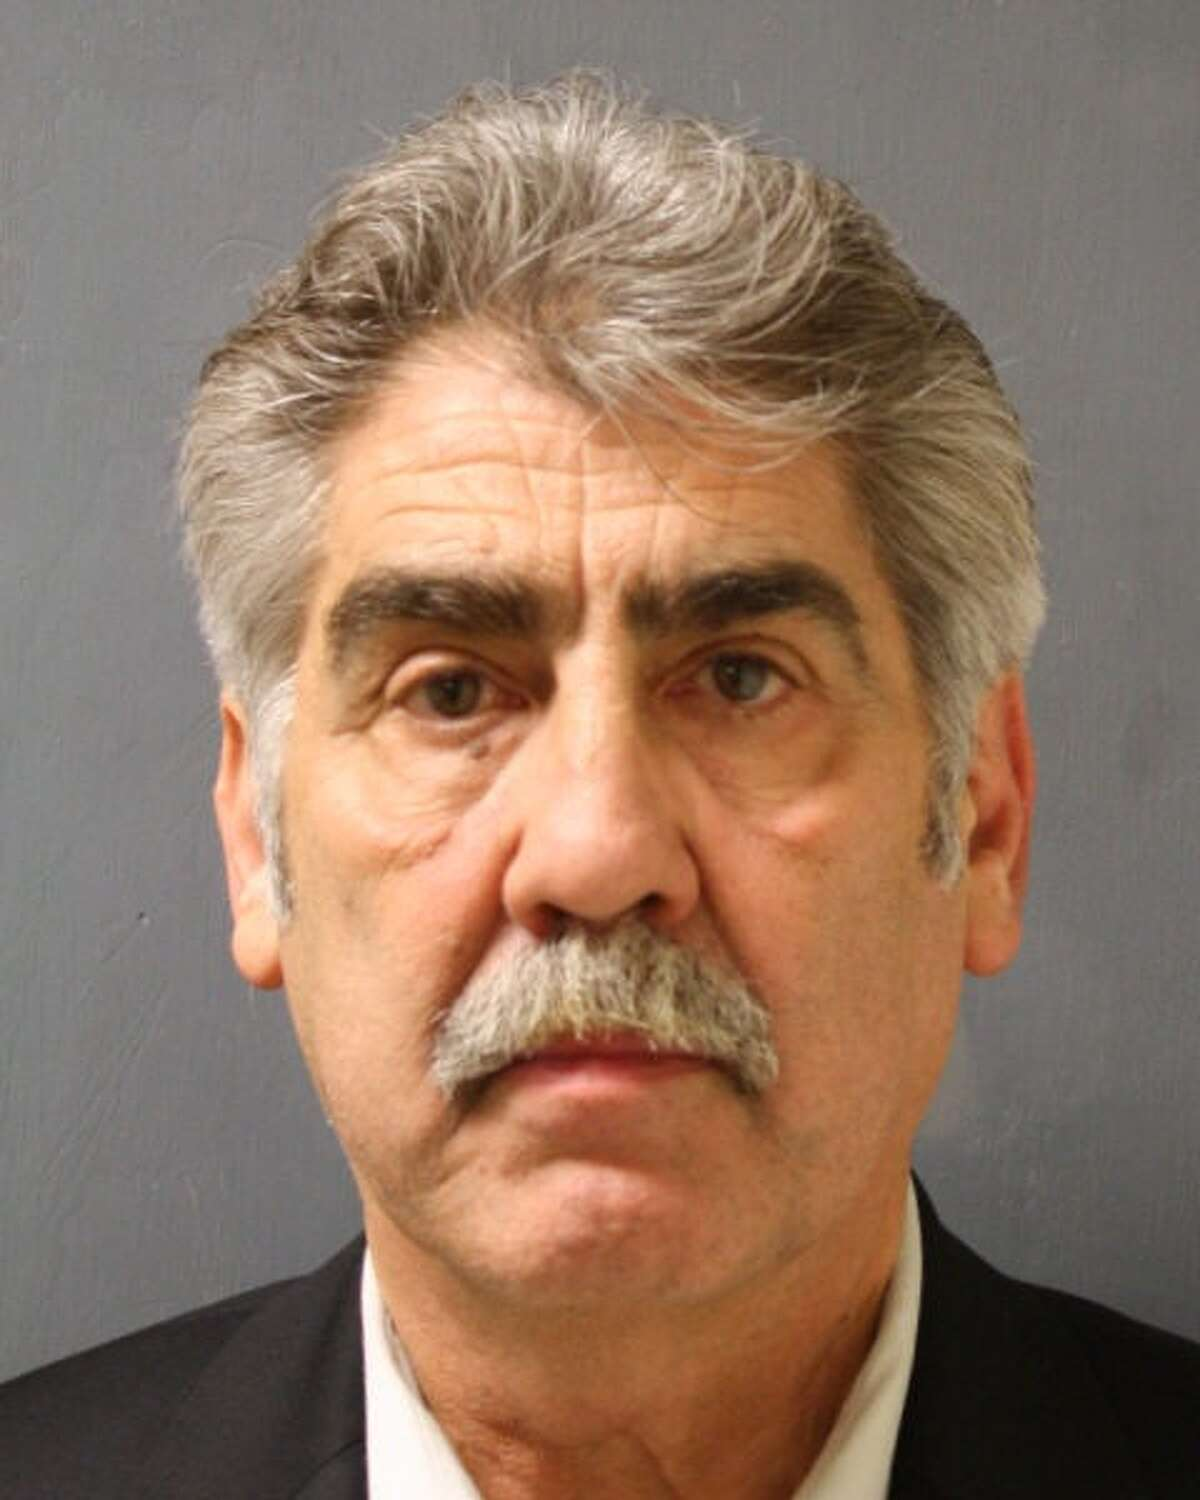 Longtime Precinct 5 Constable Victor Trevino has been charged with four felony indictments alleging abuse of official capacity, misapplication of fiduciary property and tampering with a government document